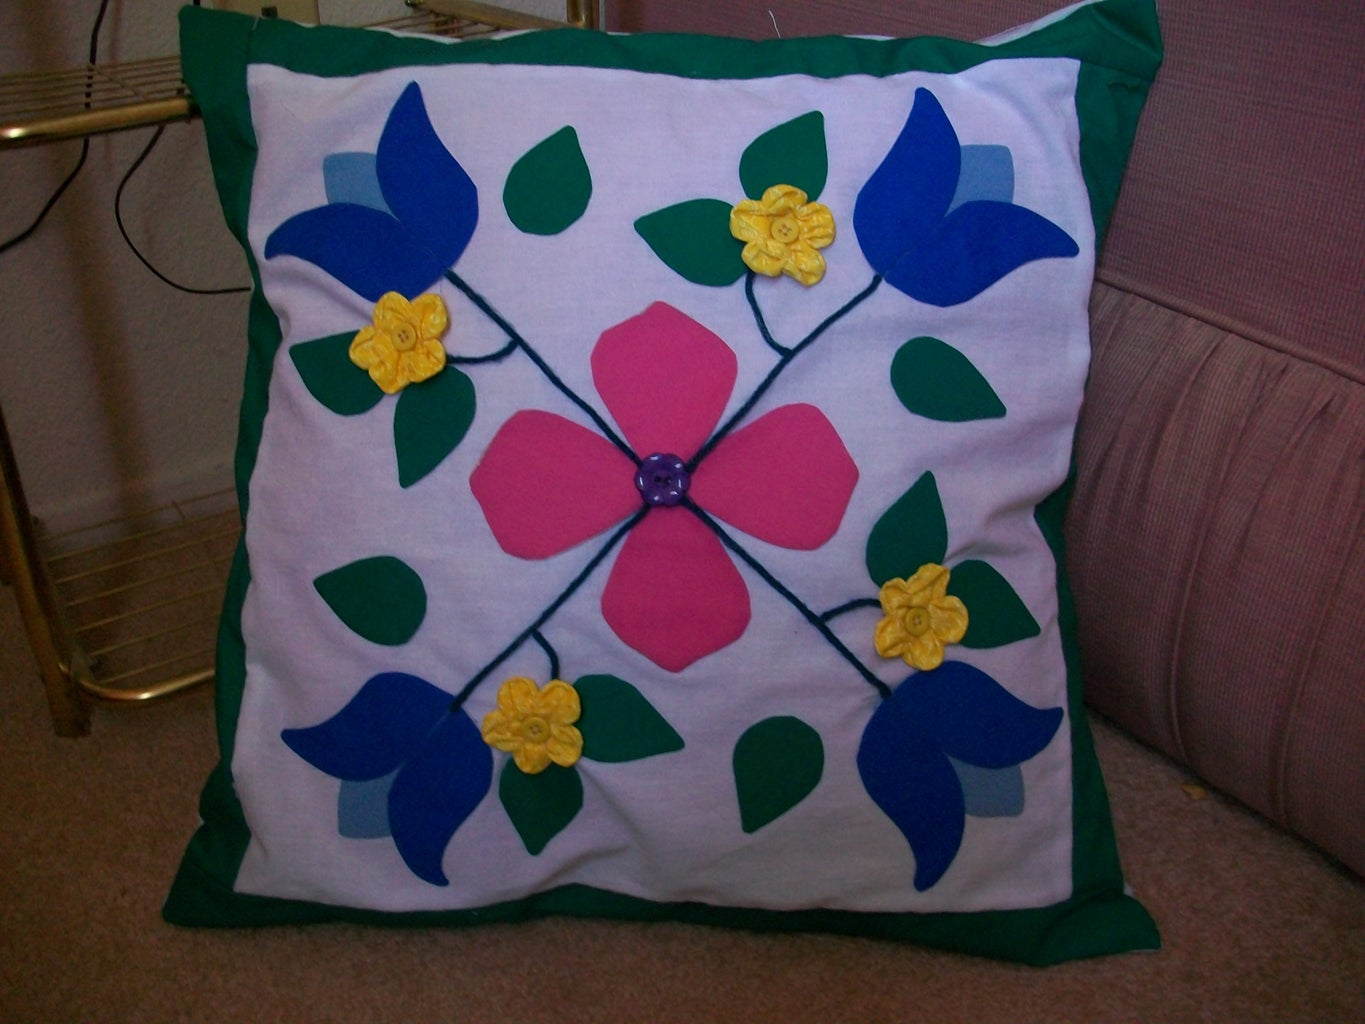 Spring Flowers - a Special Cushion for Mom!